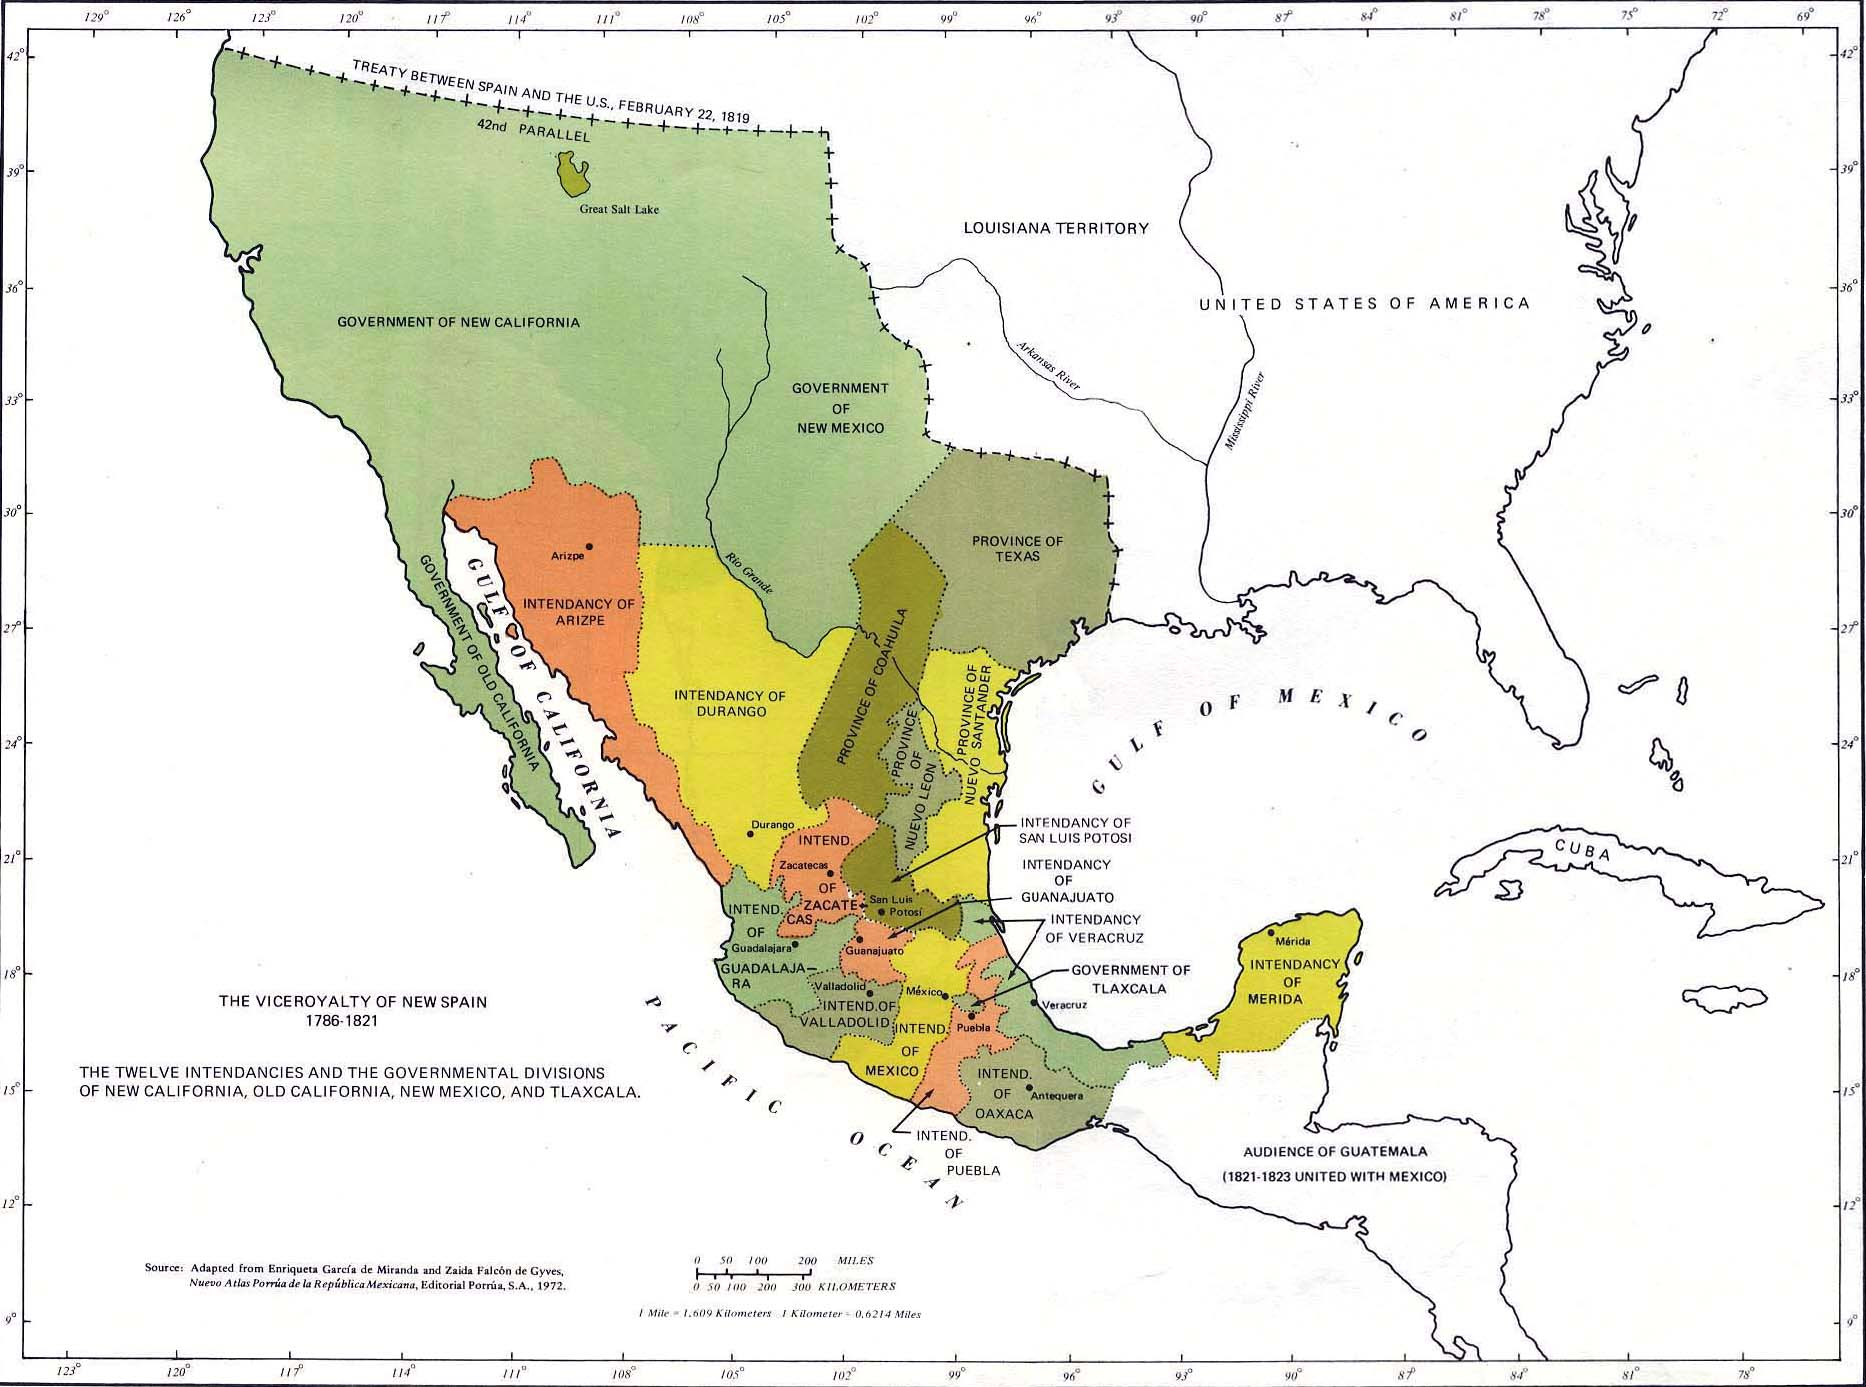 Mexico - The Viceroyalty of New Spain, 1786-1821